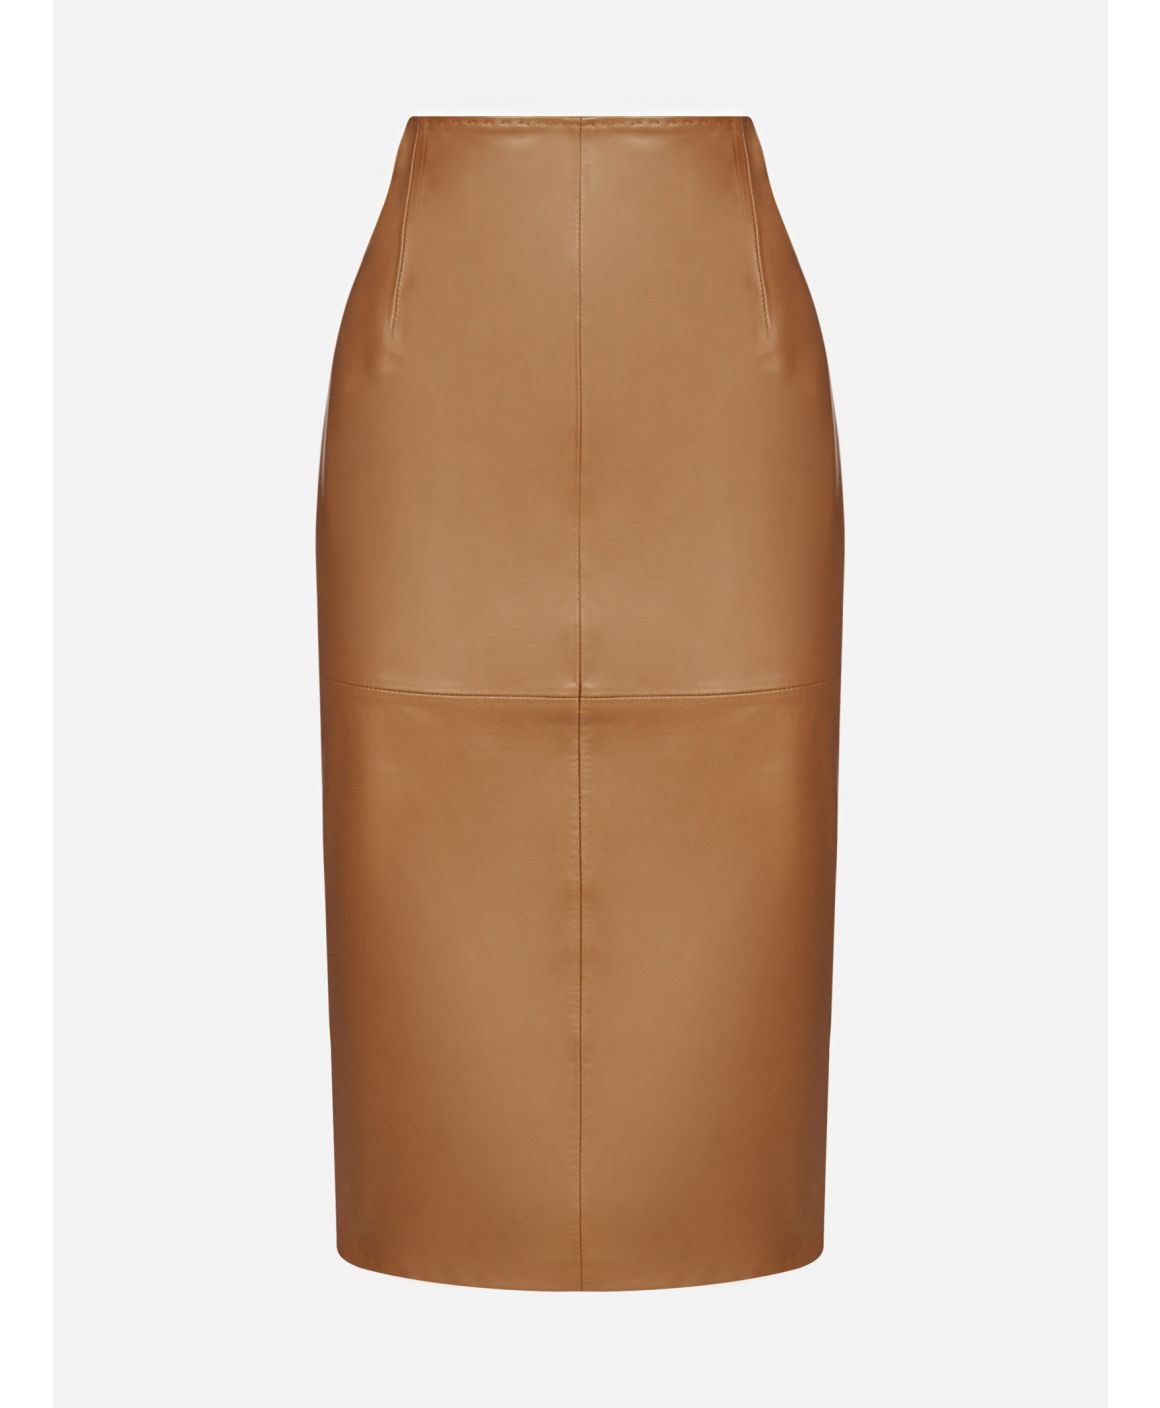 Torquay leather skirt